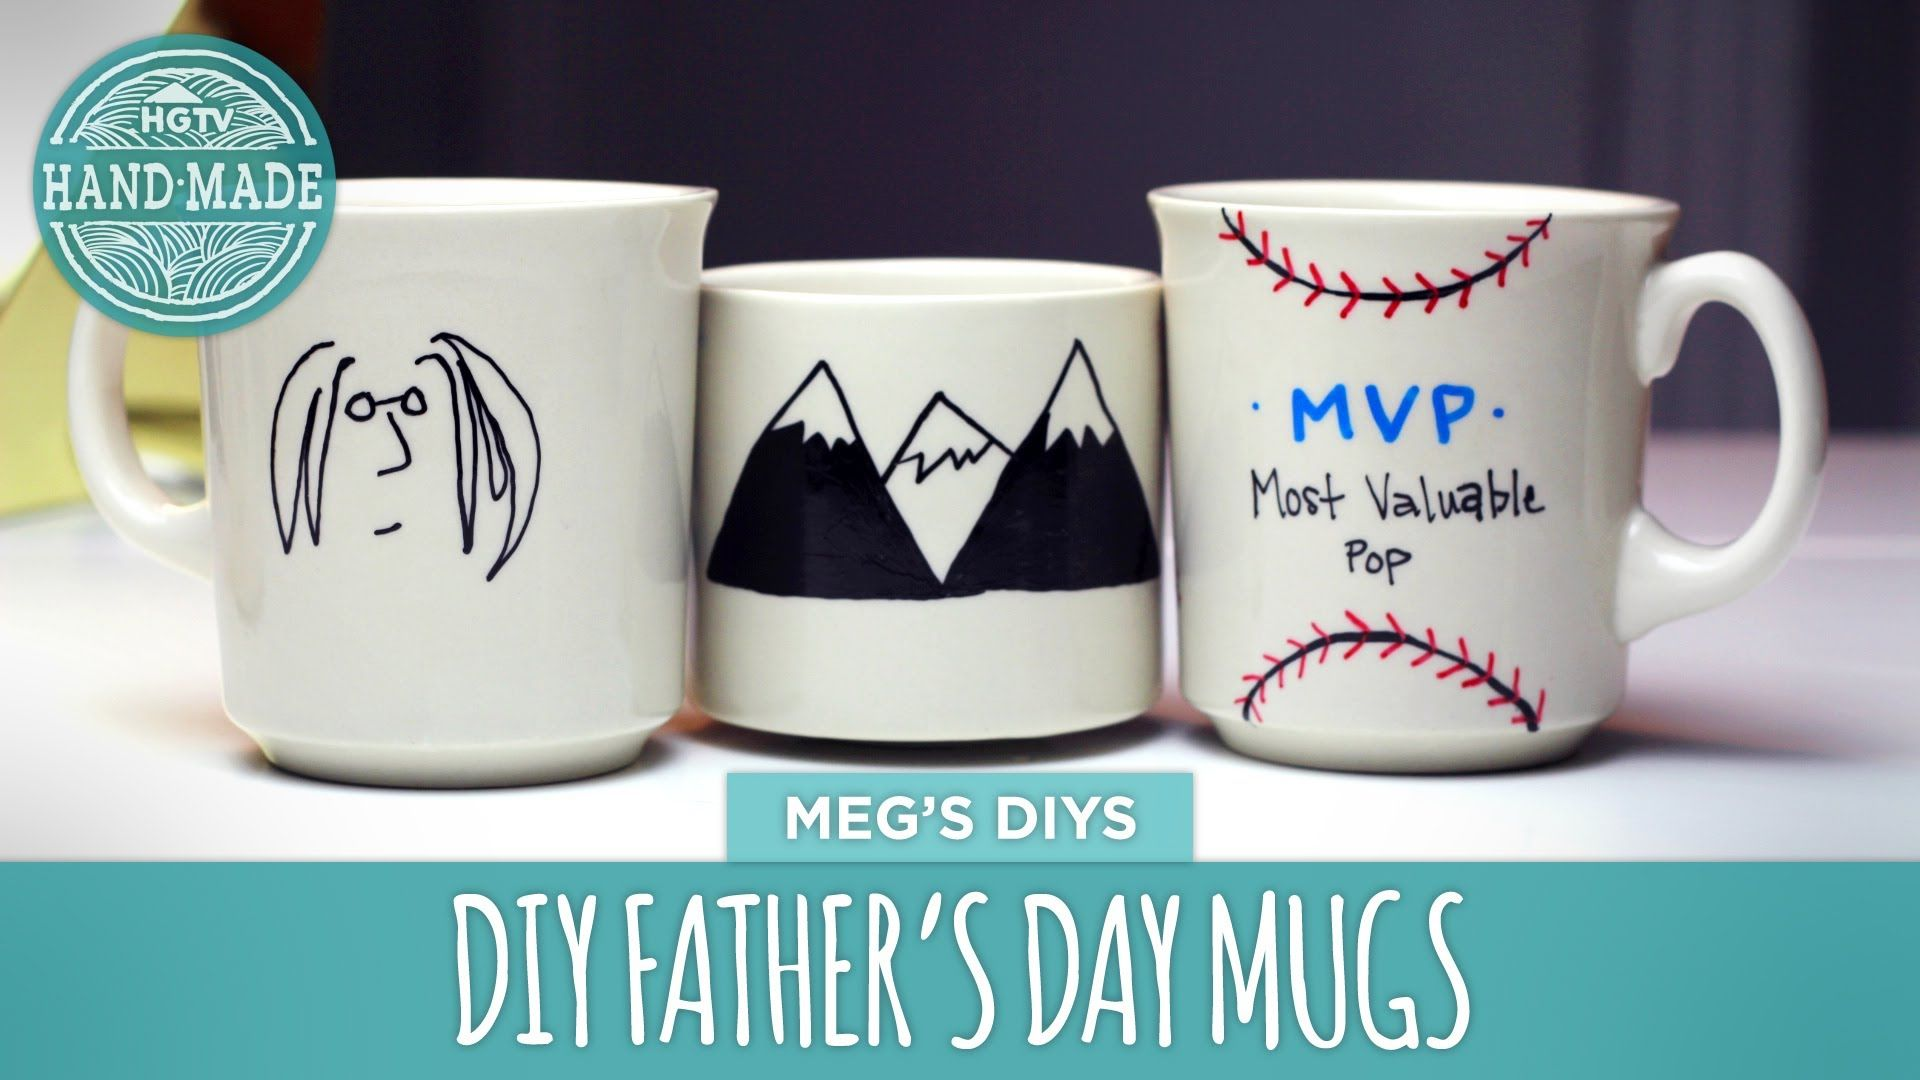 Did you know that they key to DISHWASHER SAFE DIY mugs is oil based